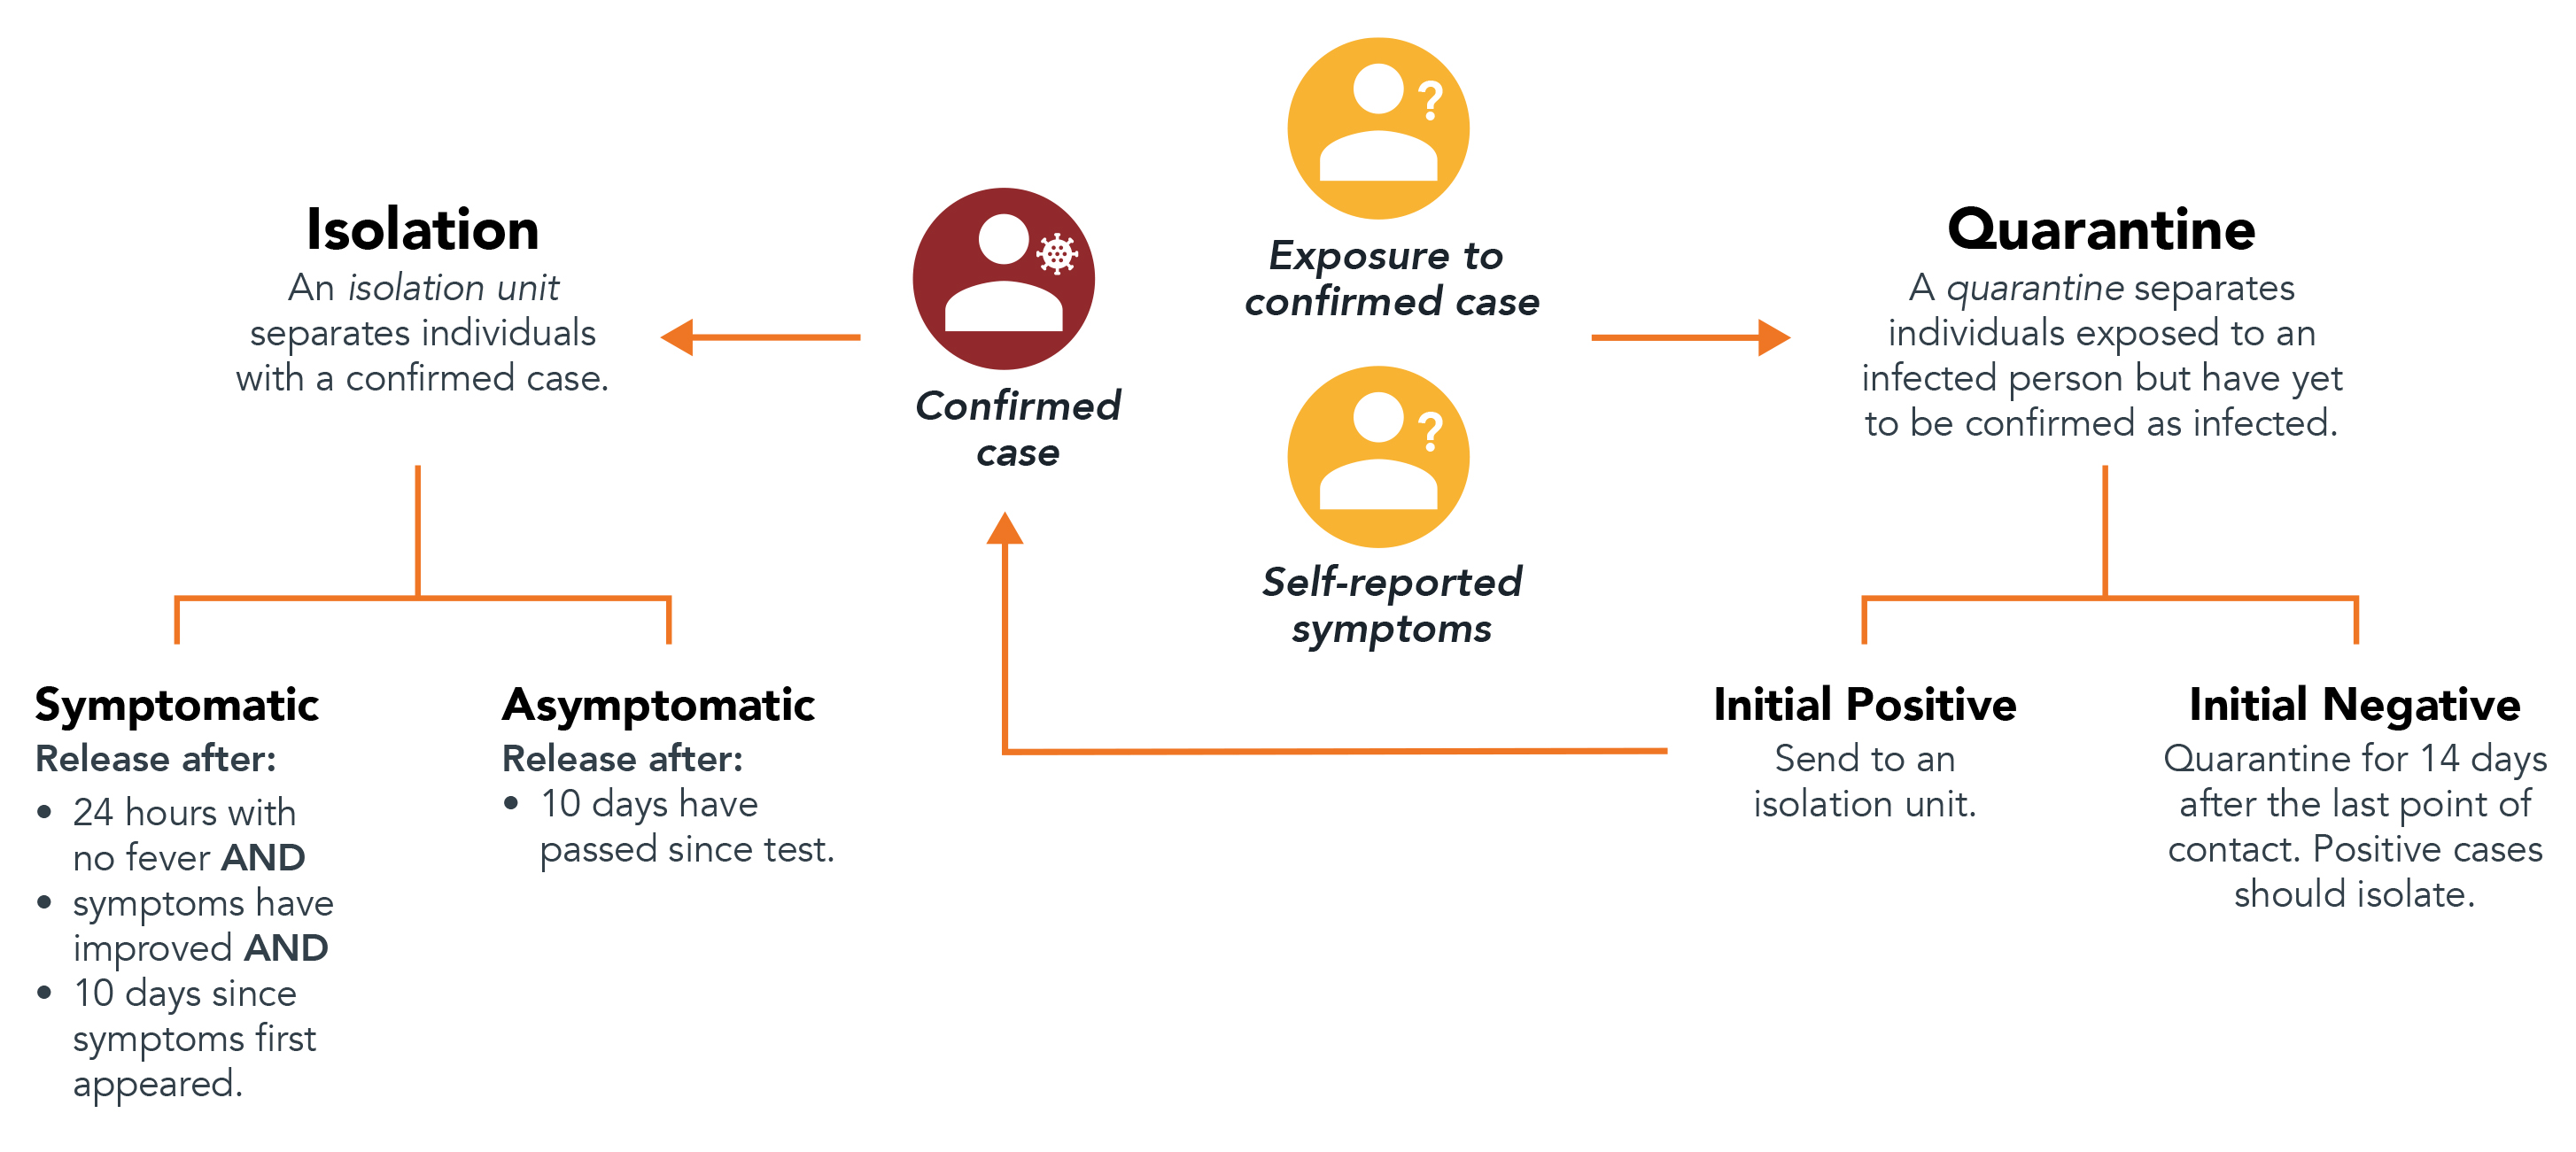 Diagram describing the steps students and employees should take if they test positive for COVID-19 or receive and exposure notification.